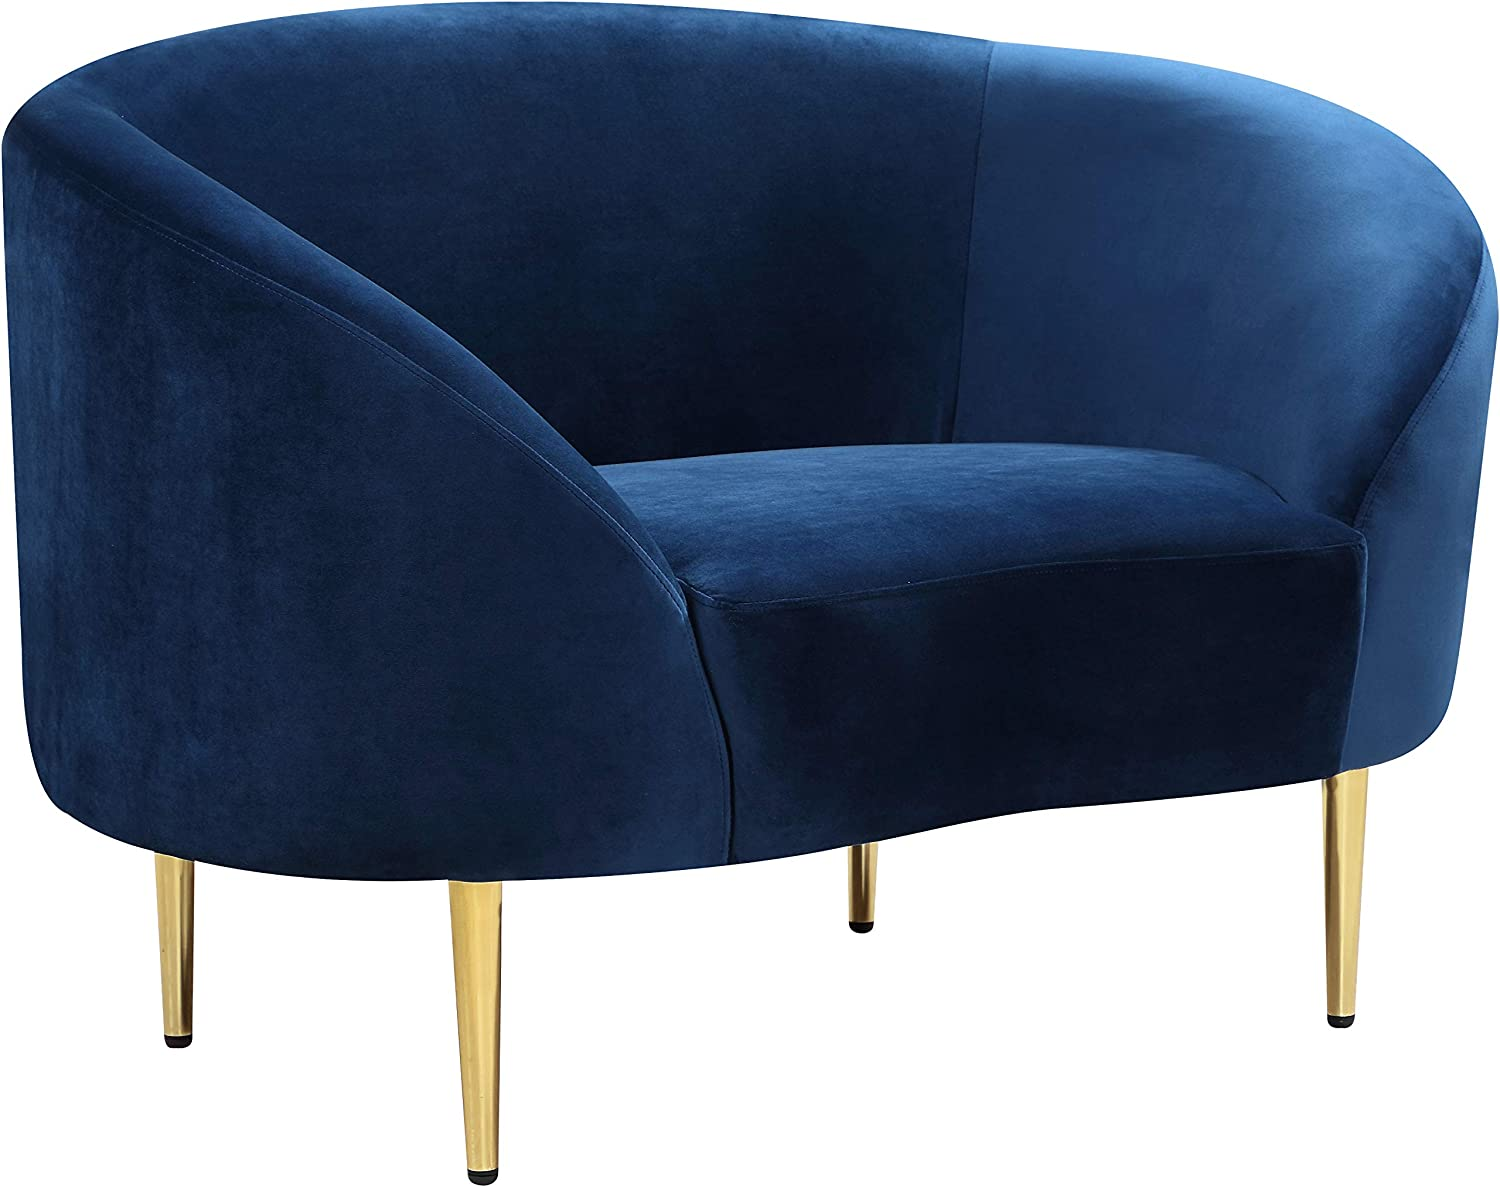 """Meridian Furniture Ritz Collection Modern   Contemporary Velvet Upholstered Chair with Sturdy Metal Legs in Rich Gold Finish, Navy, 43.5"""" W x 31.75"""" D x 30.5"""" H"""